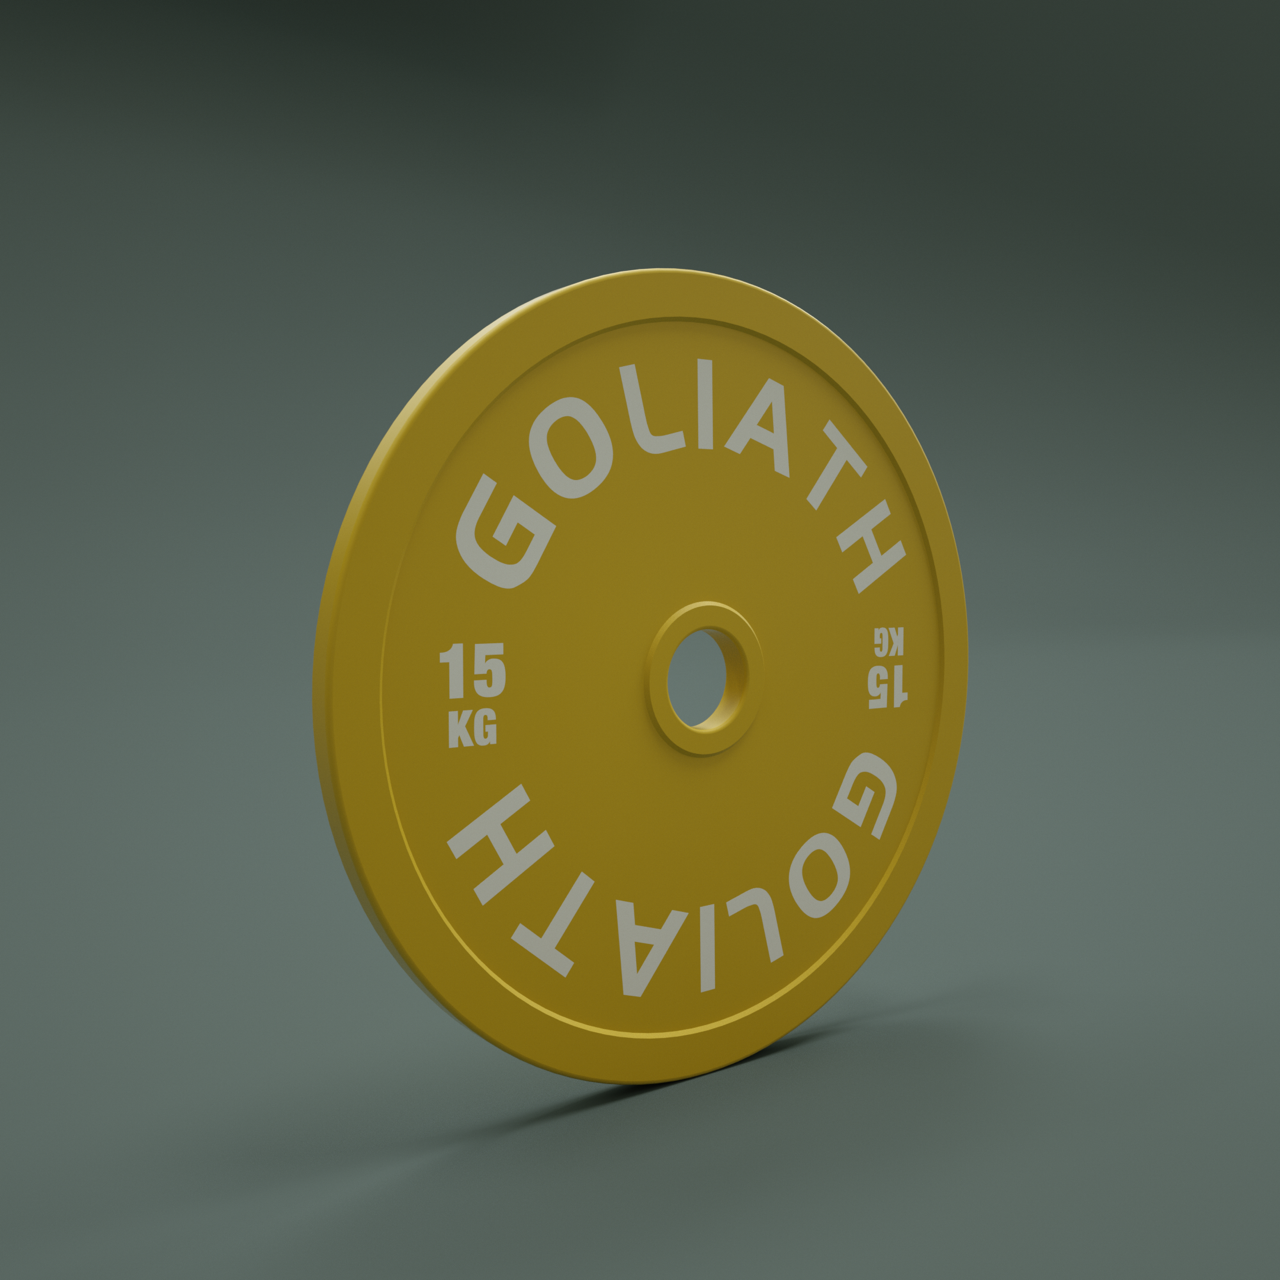 PRESALE OCTOBER - PRINTED LOGO - Goliath Barbell Calibrated Plates 459kg Set - BUY THE SET AND SAVE - PRINTED LOGO